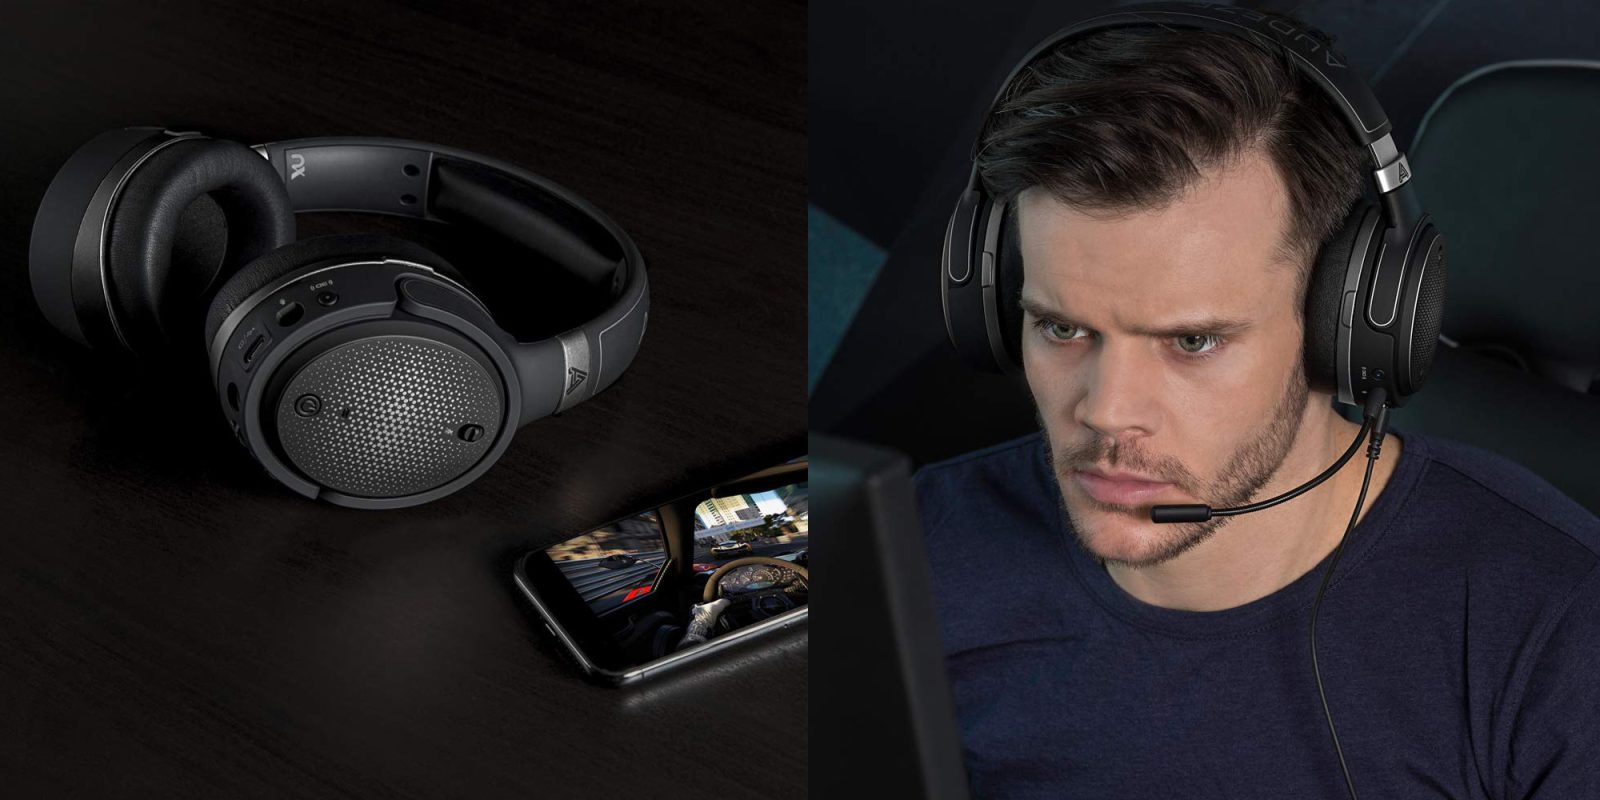 Amazon offers the Audeze Mobius 3D gaming headset at $100